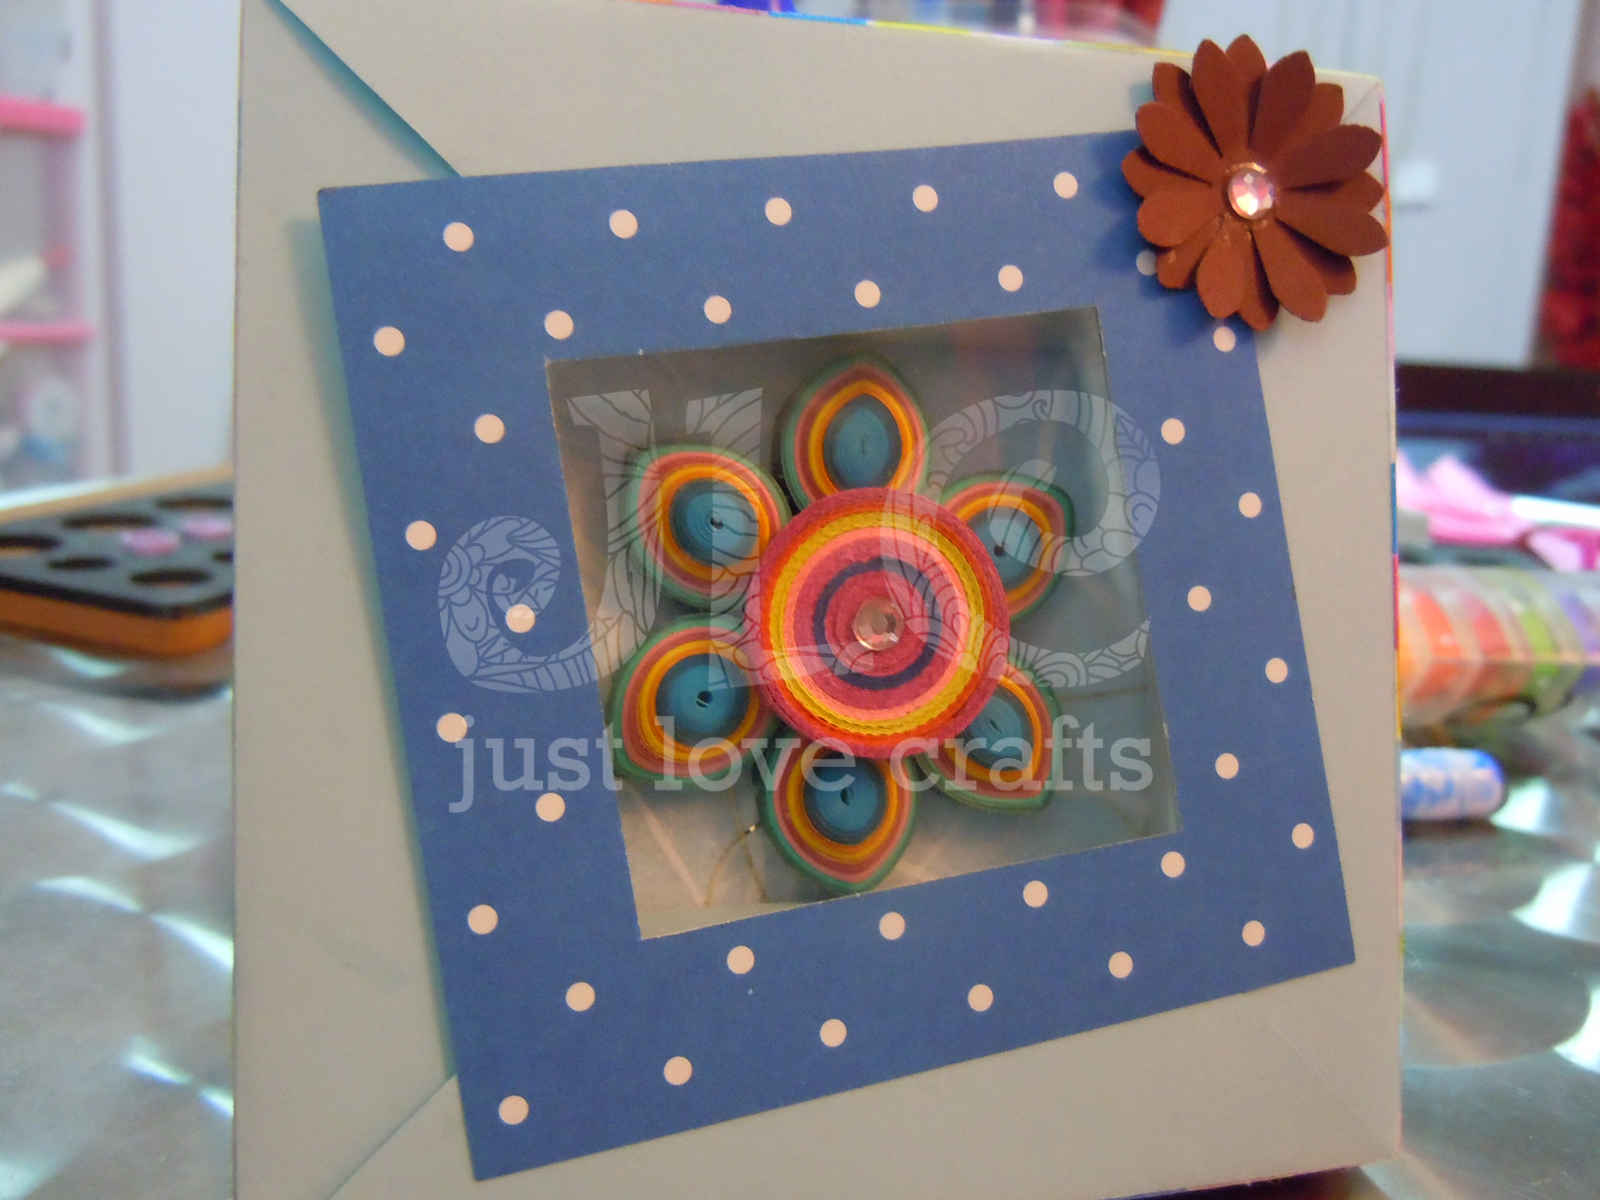 Just love crafts the reason it appears smaller than the others is that the width of this frame is more than the other boxes i have made and is perfect to hold a pretty 3 d jeuxipadfo Choice Image